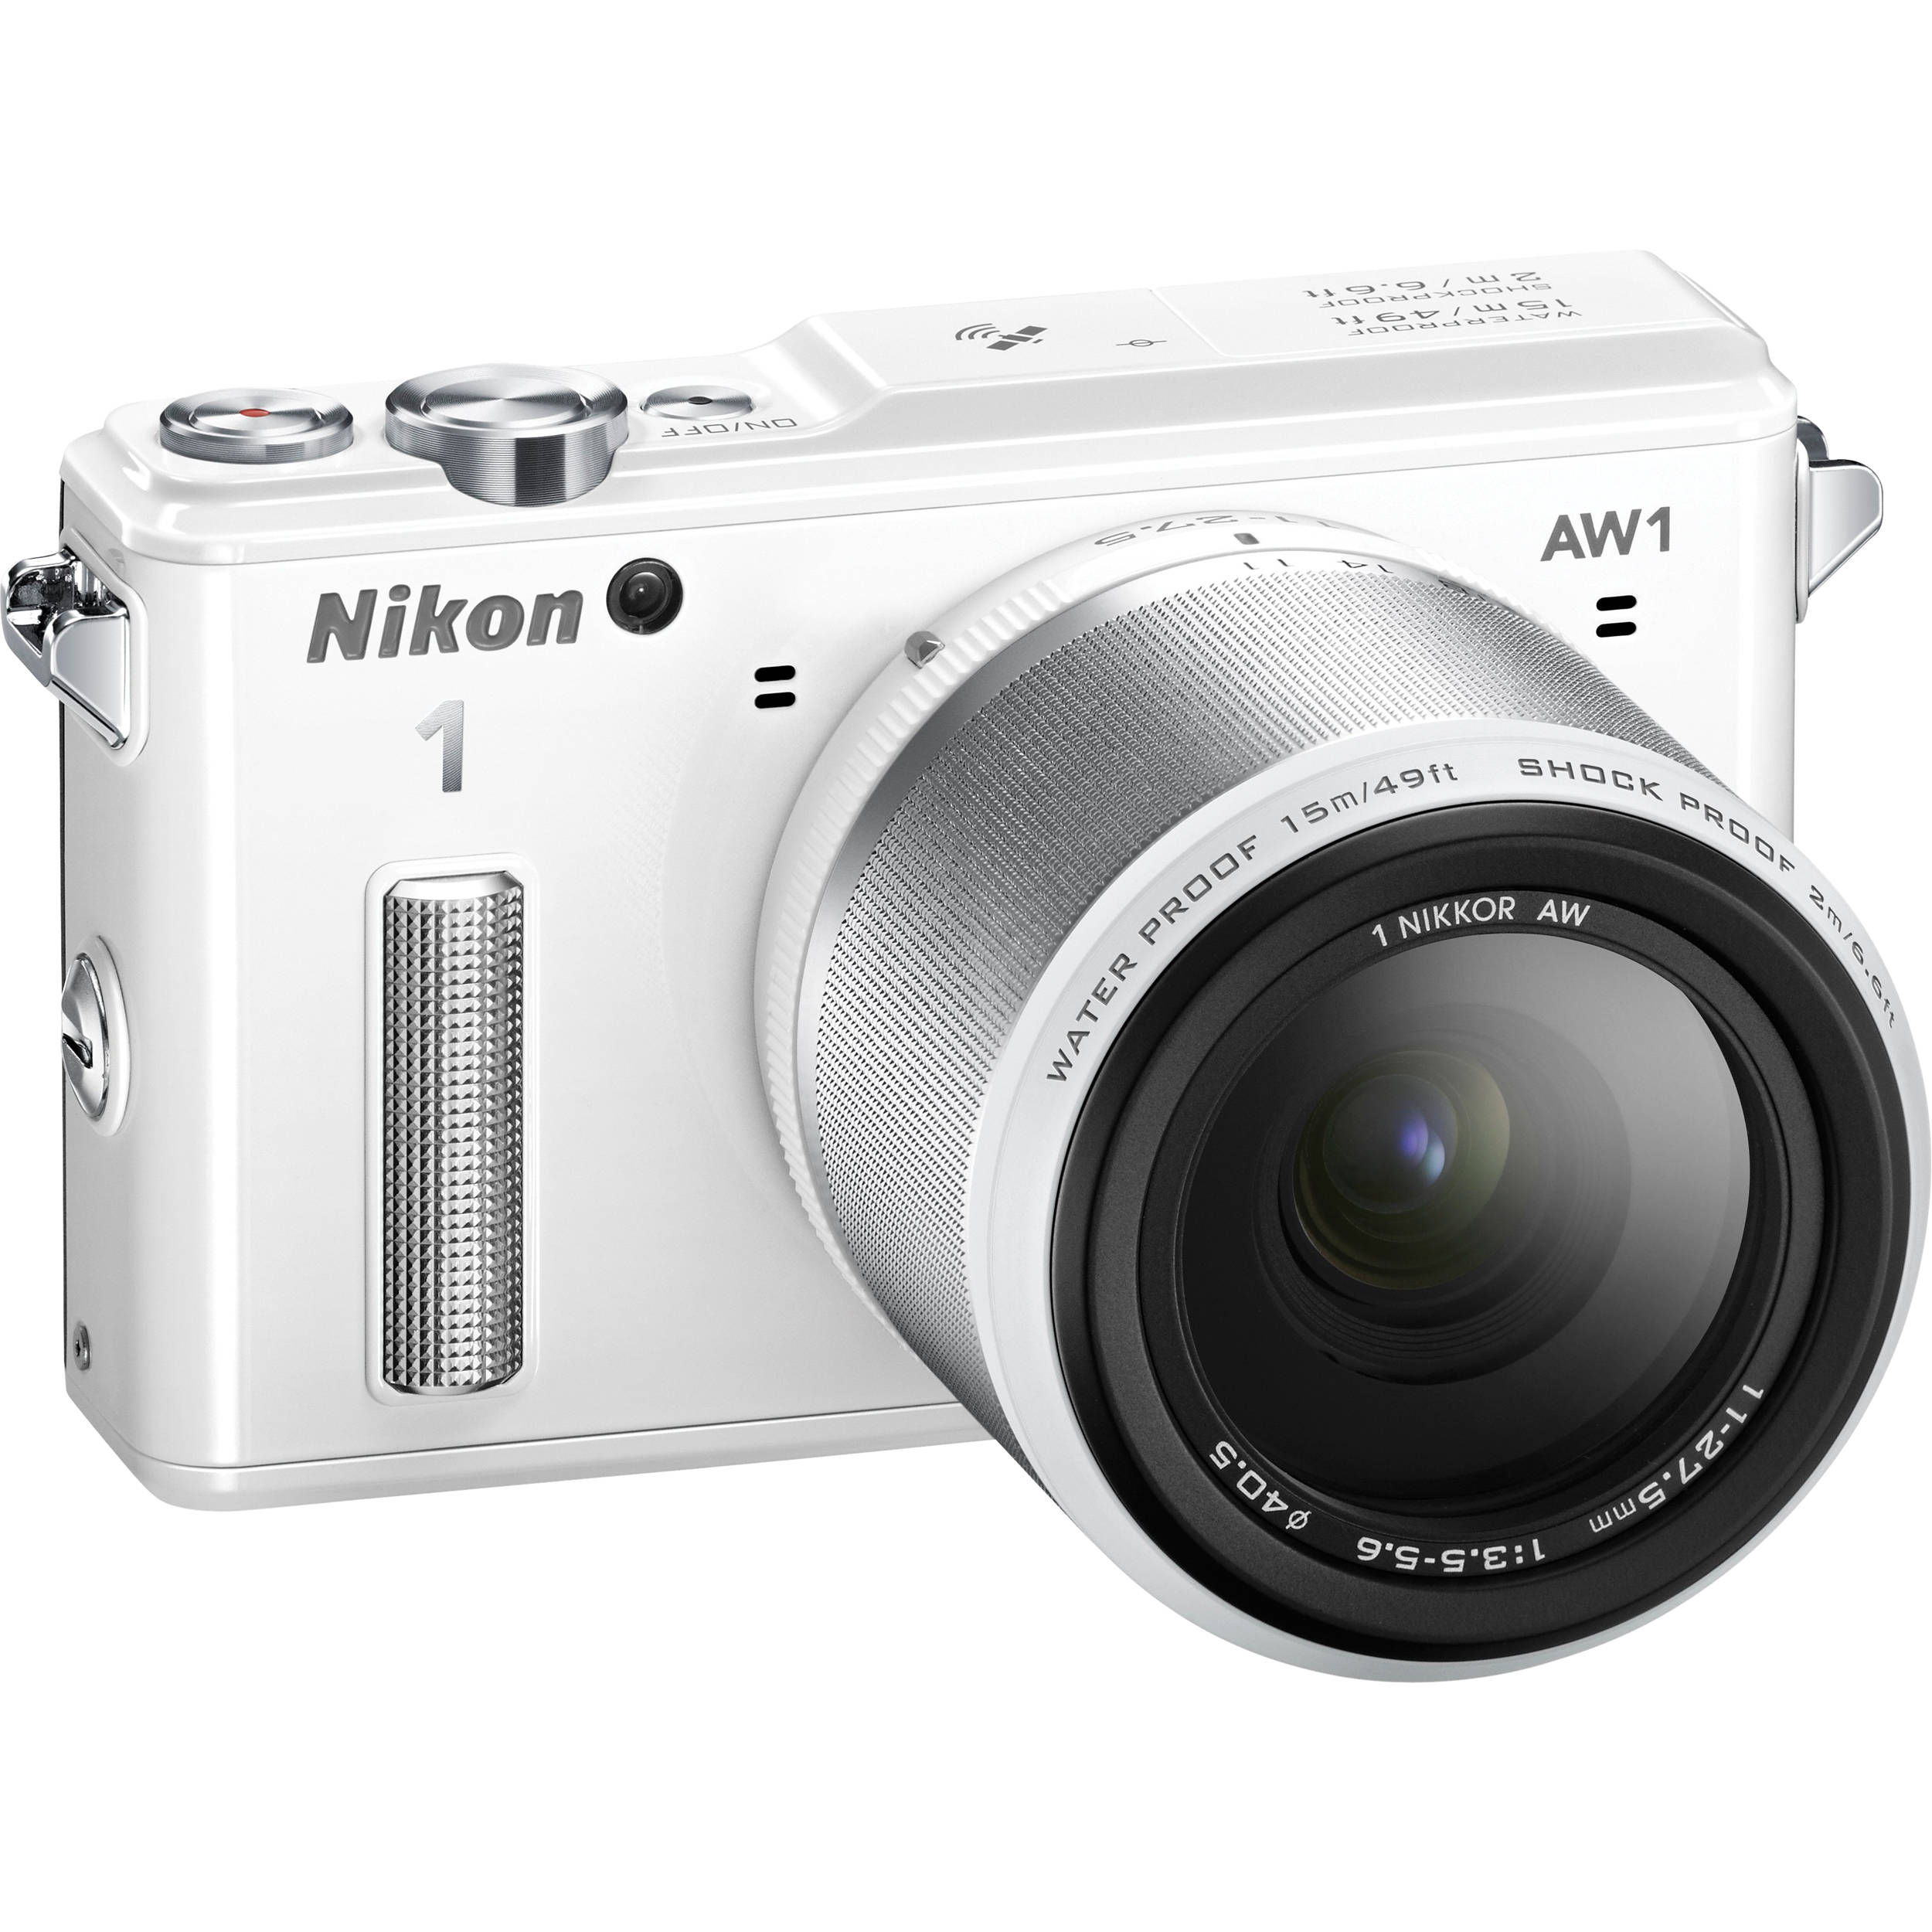 Nikon 1 Aw1 Mirrorless Digital Camera With 11 27 5mm Lens